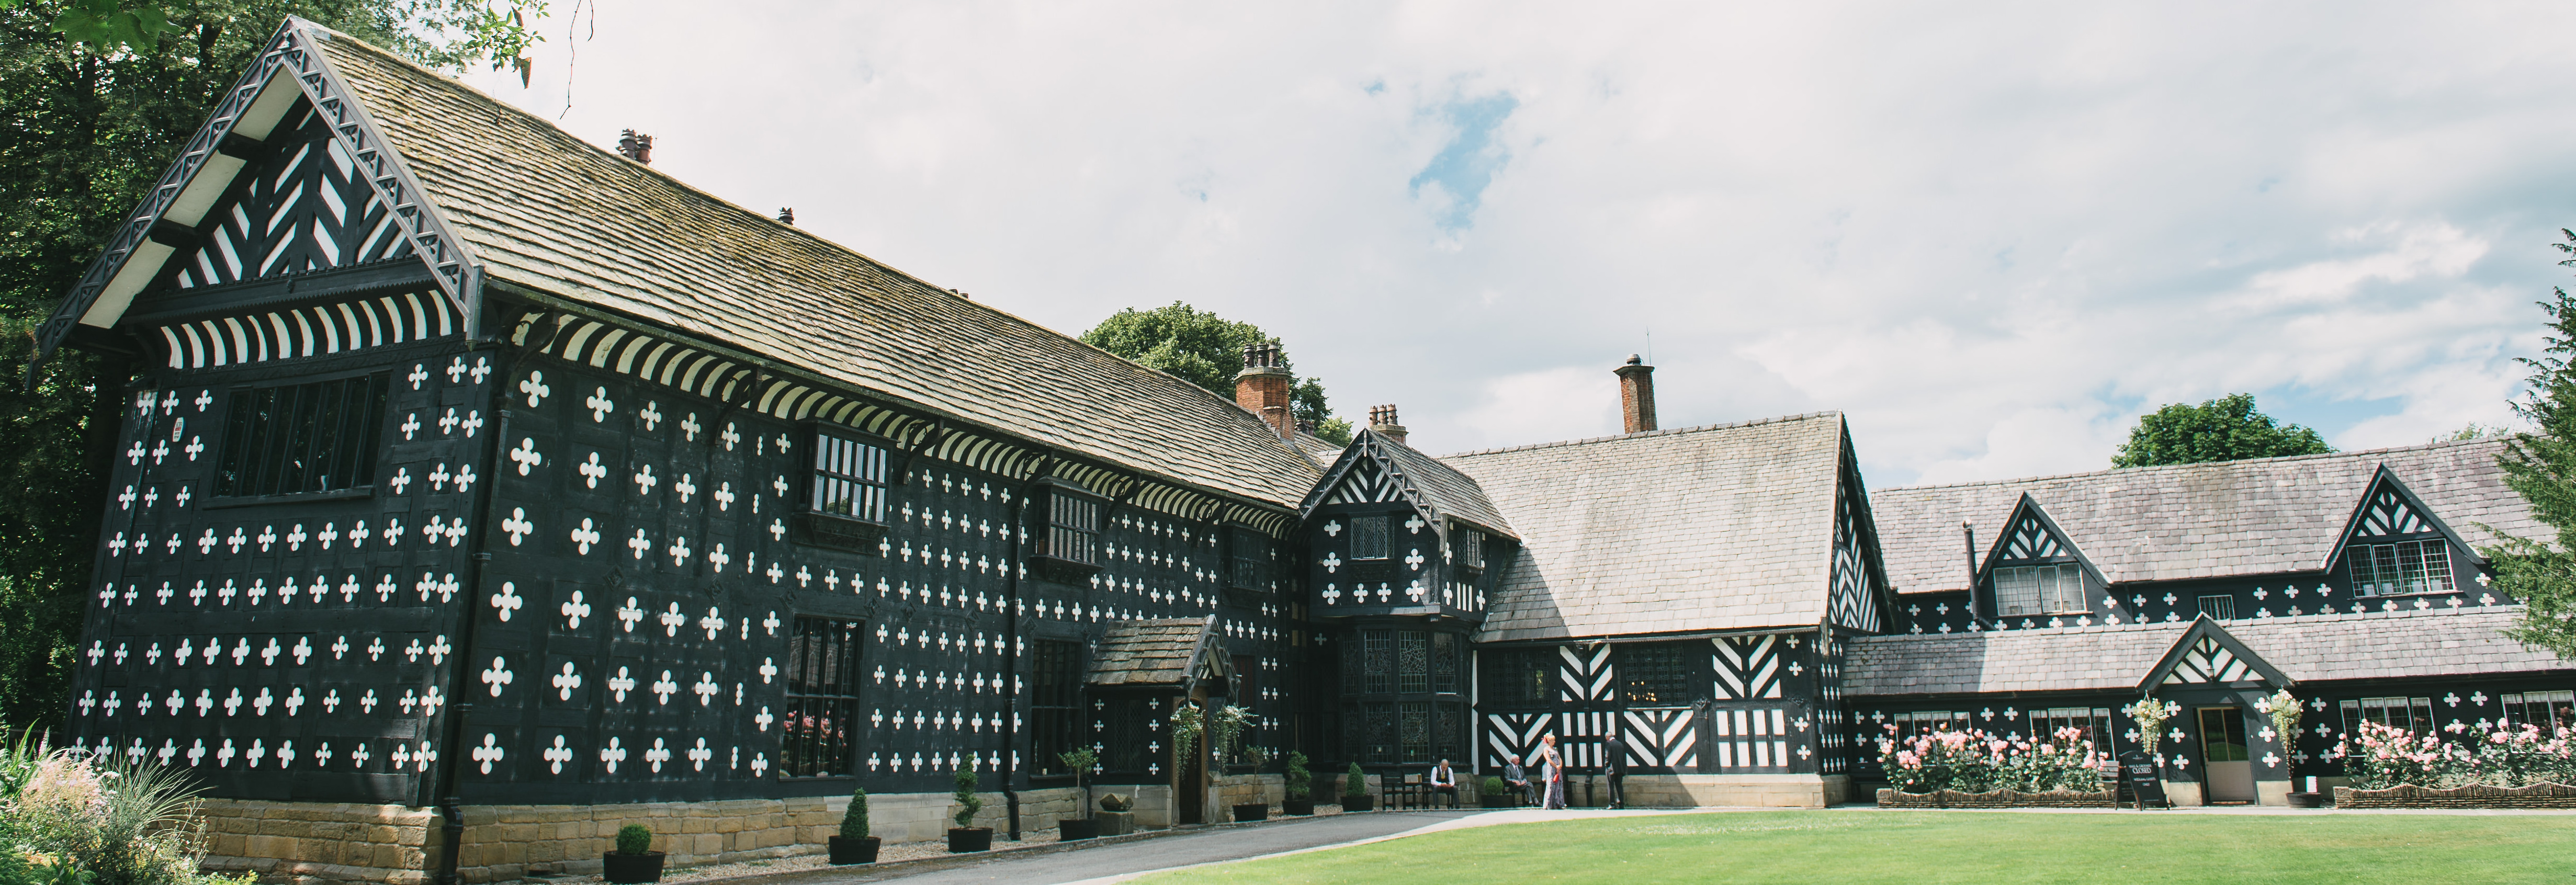 Samlesbury Hall - Lancashire's Historic Home